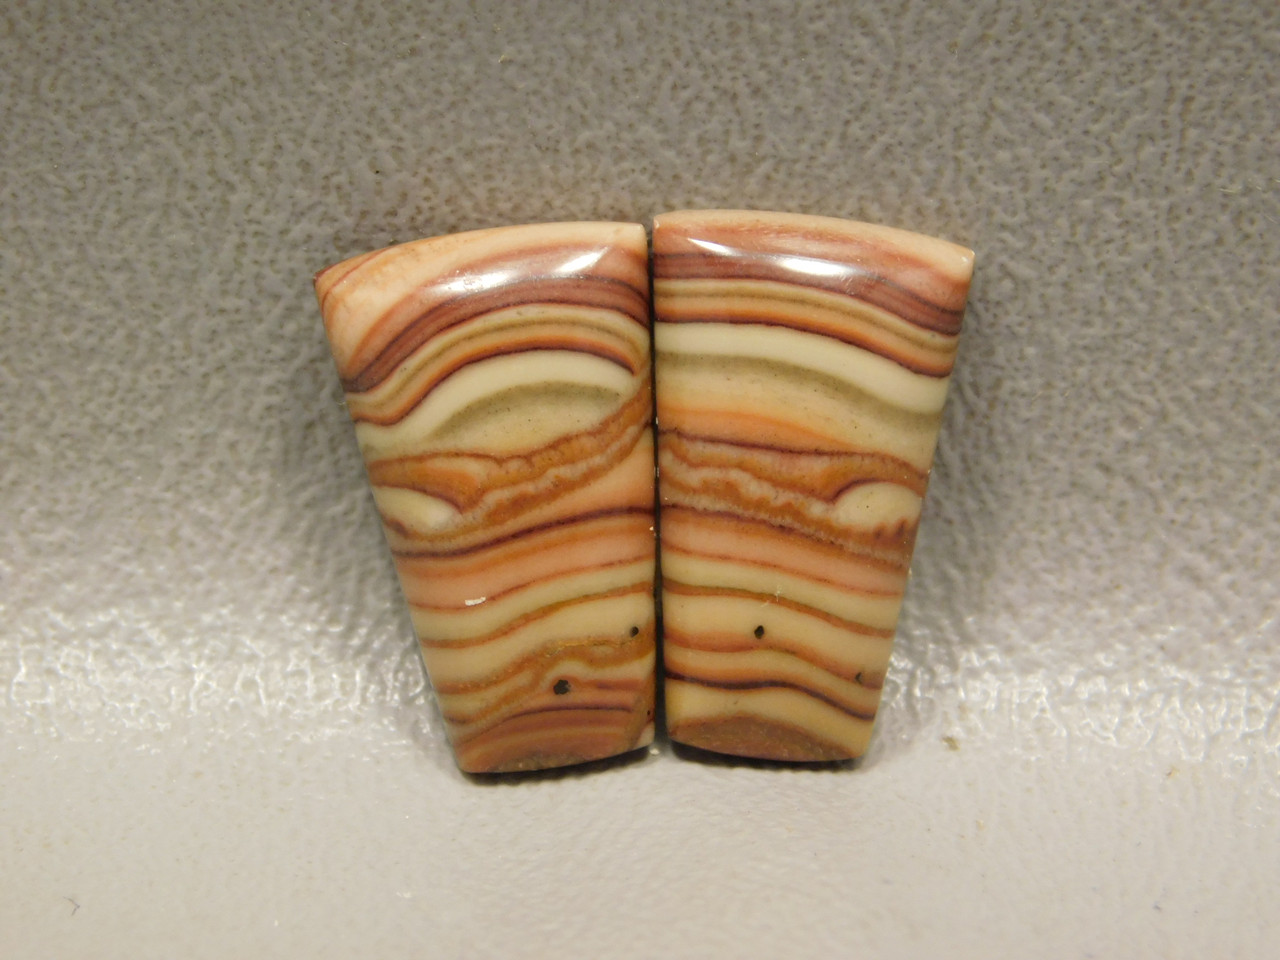 Wave Dolomite Loose Stone Cabochons Matched Pairs #5